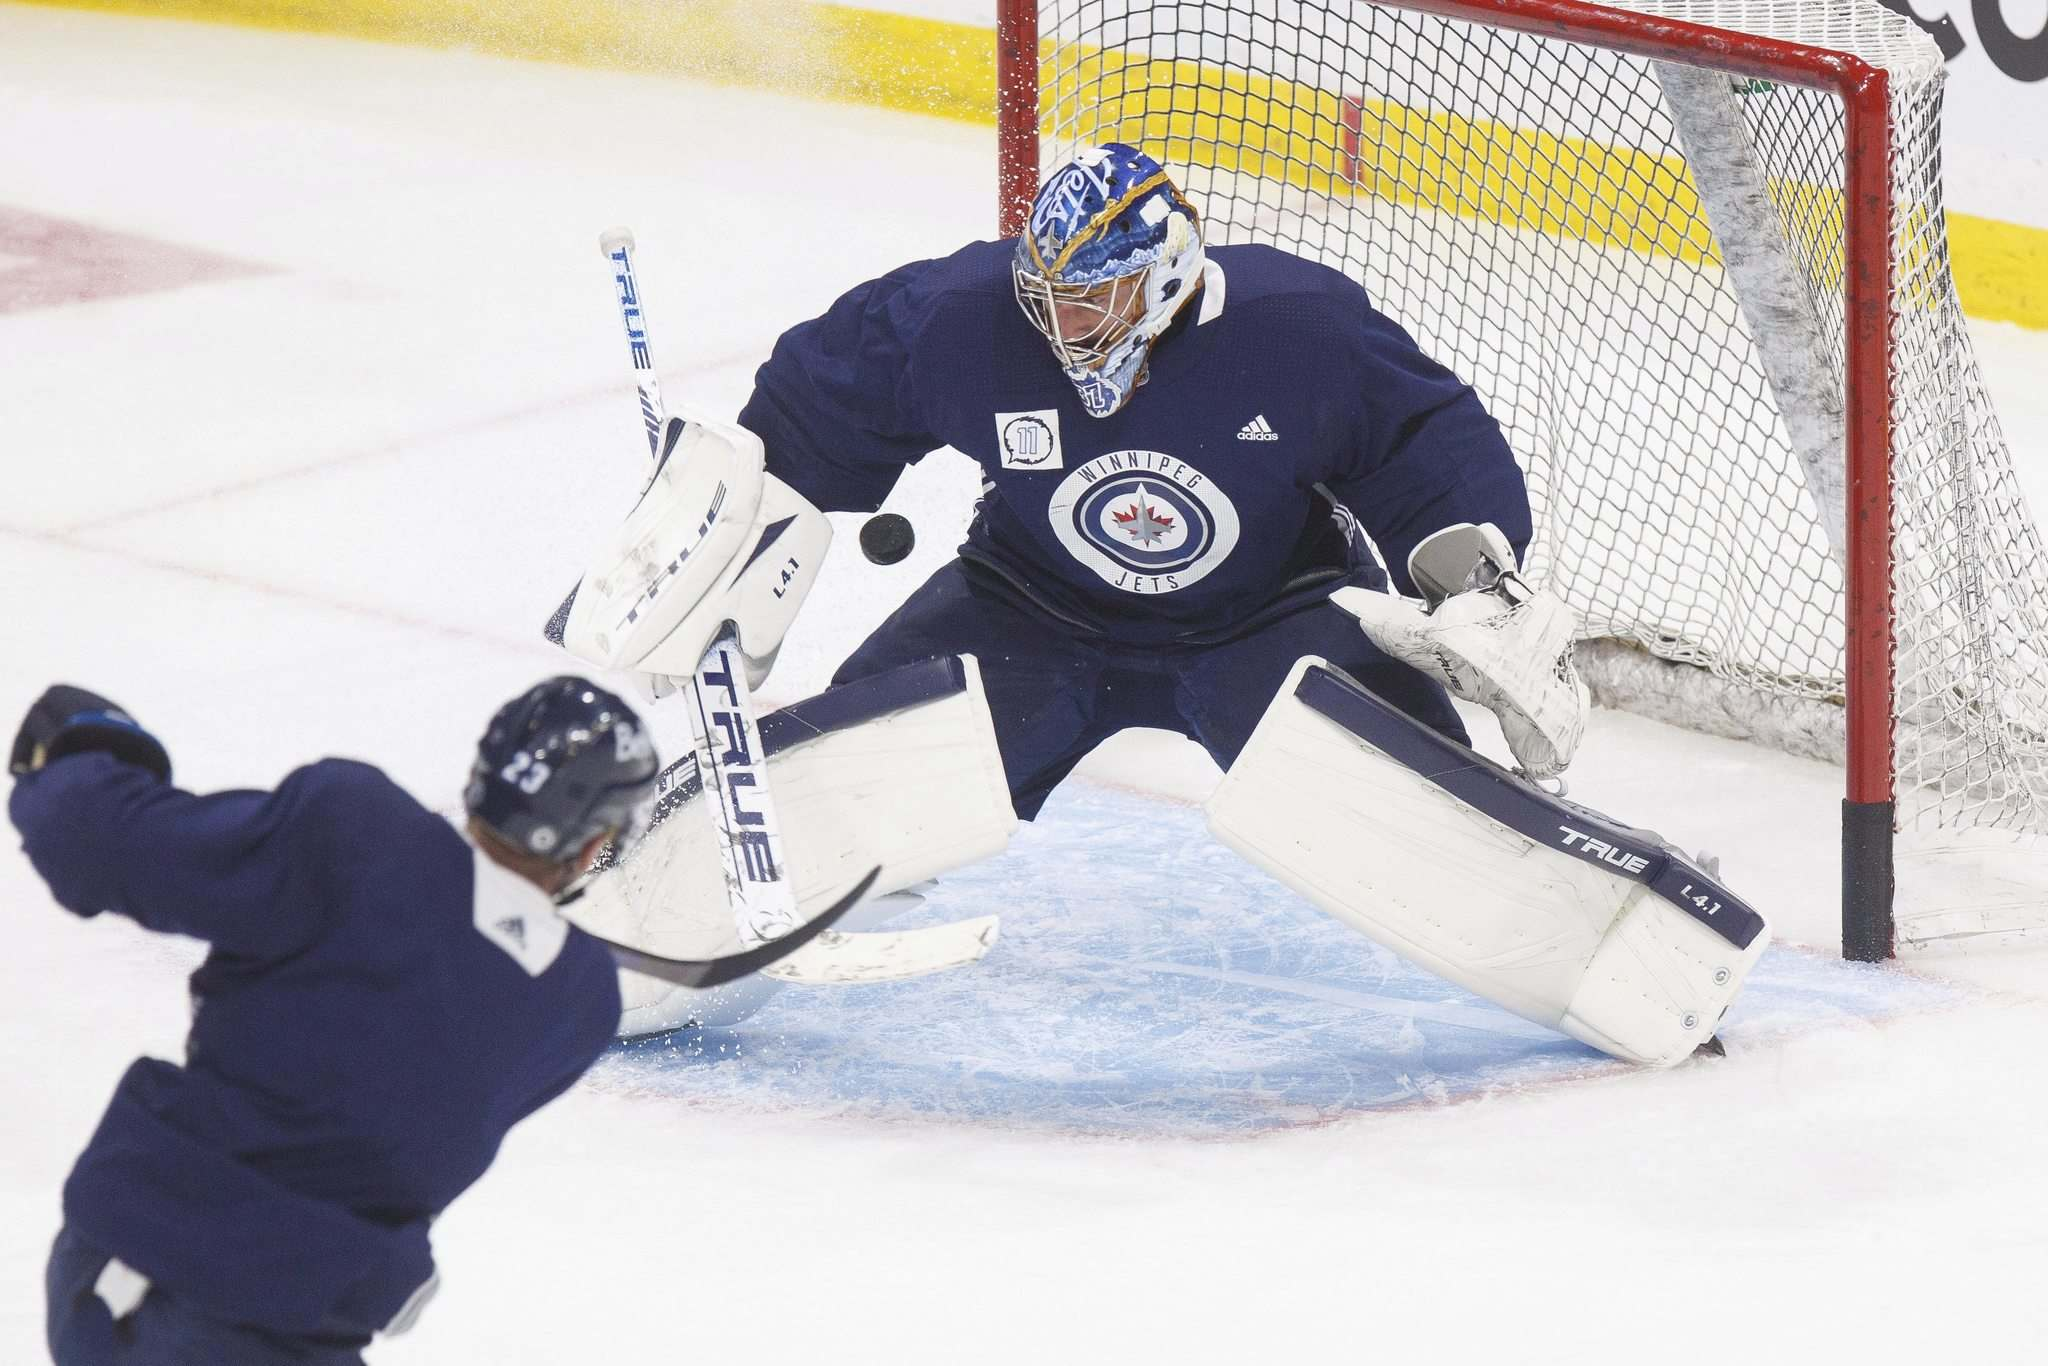 MIKE DEAL / WINNIPEG FREE PRESS</p><p>Winnipeg Jets' goaltender Connor Hellebuyck during practice at BellMTS Place Wednesday.</p>